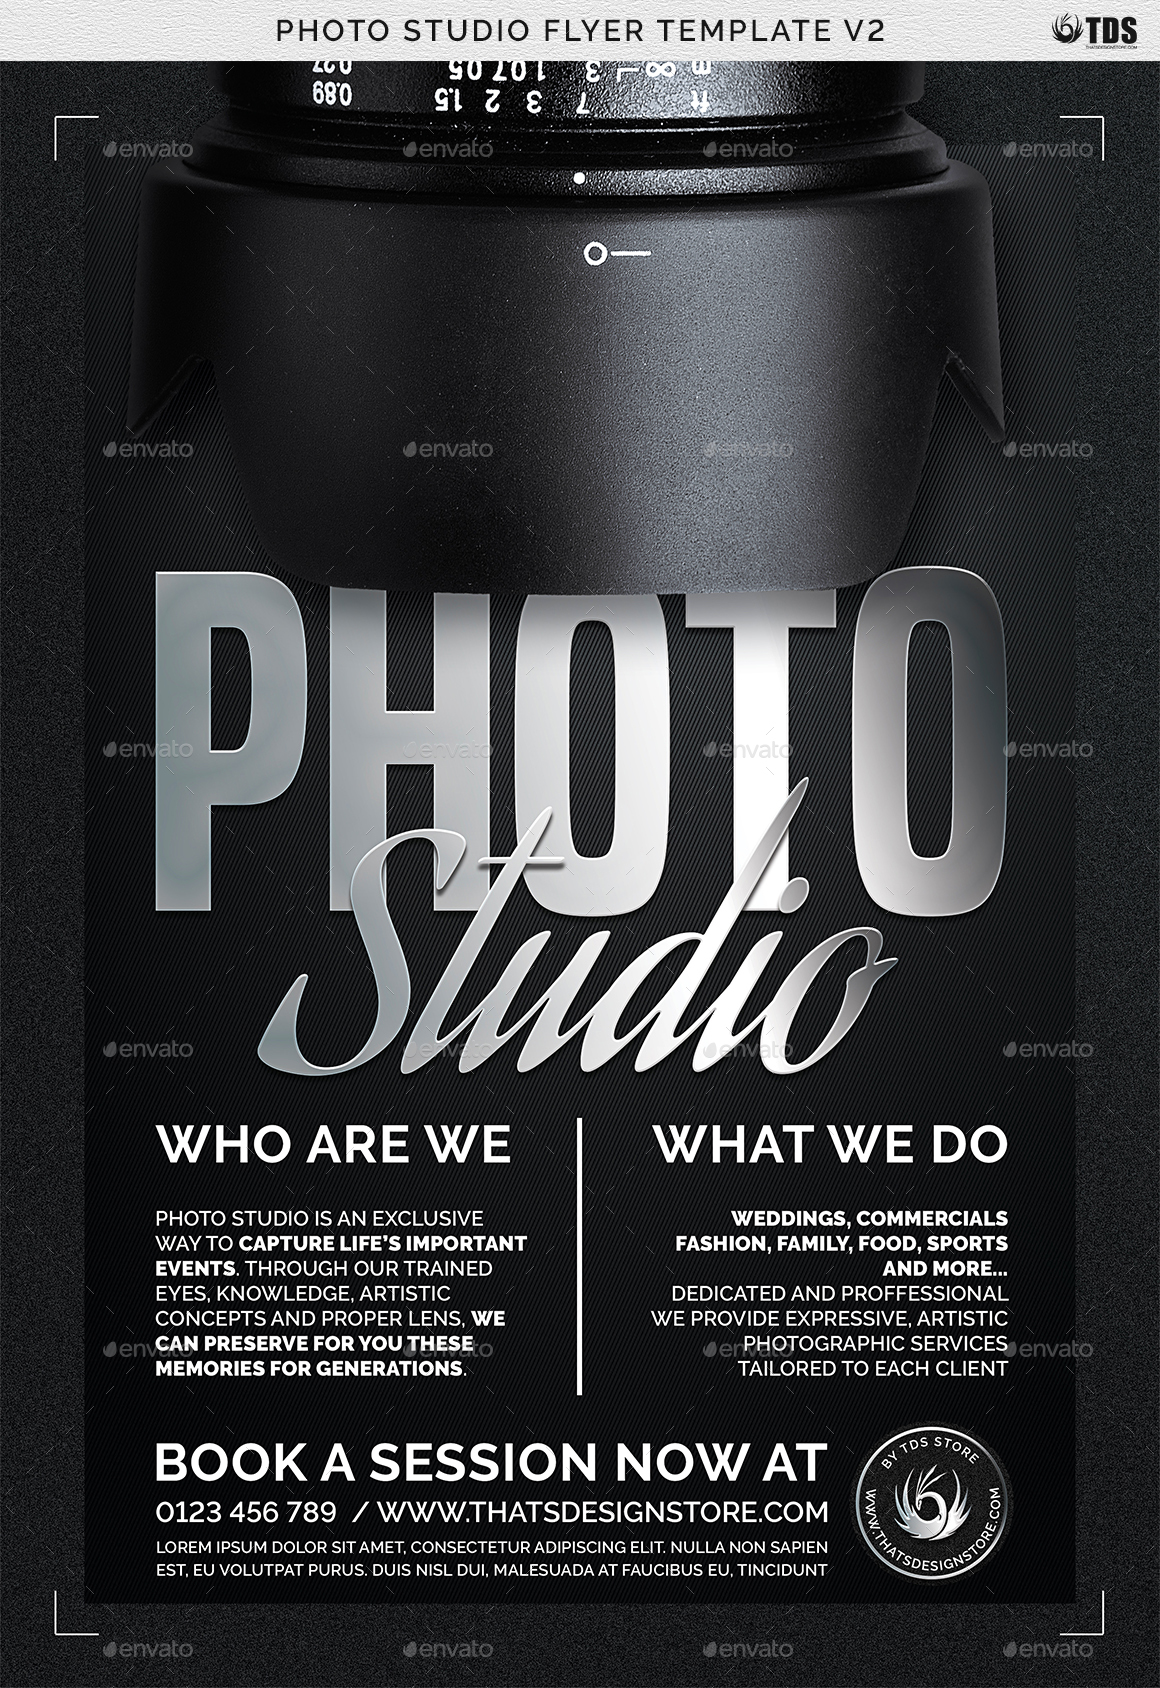 photo studio flyer template v2 by lou606 graphicriver